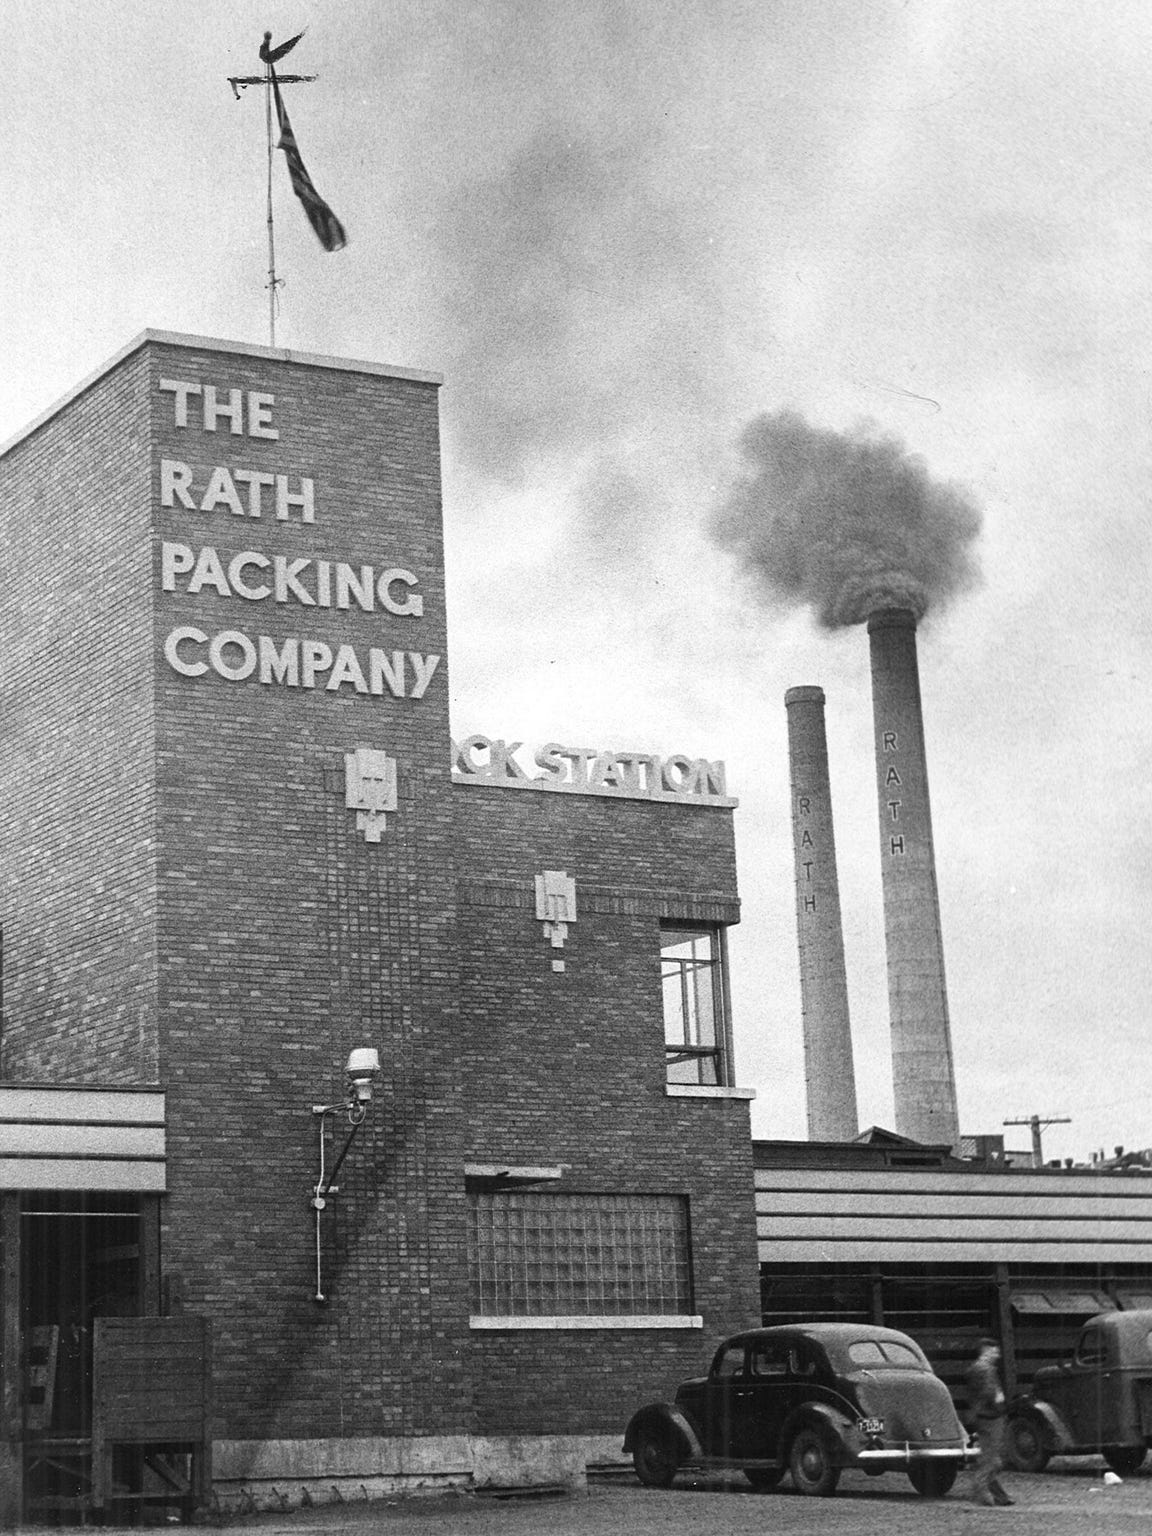 Constructed from 1927 to 1937, the Rath Packing Co.